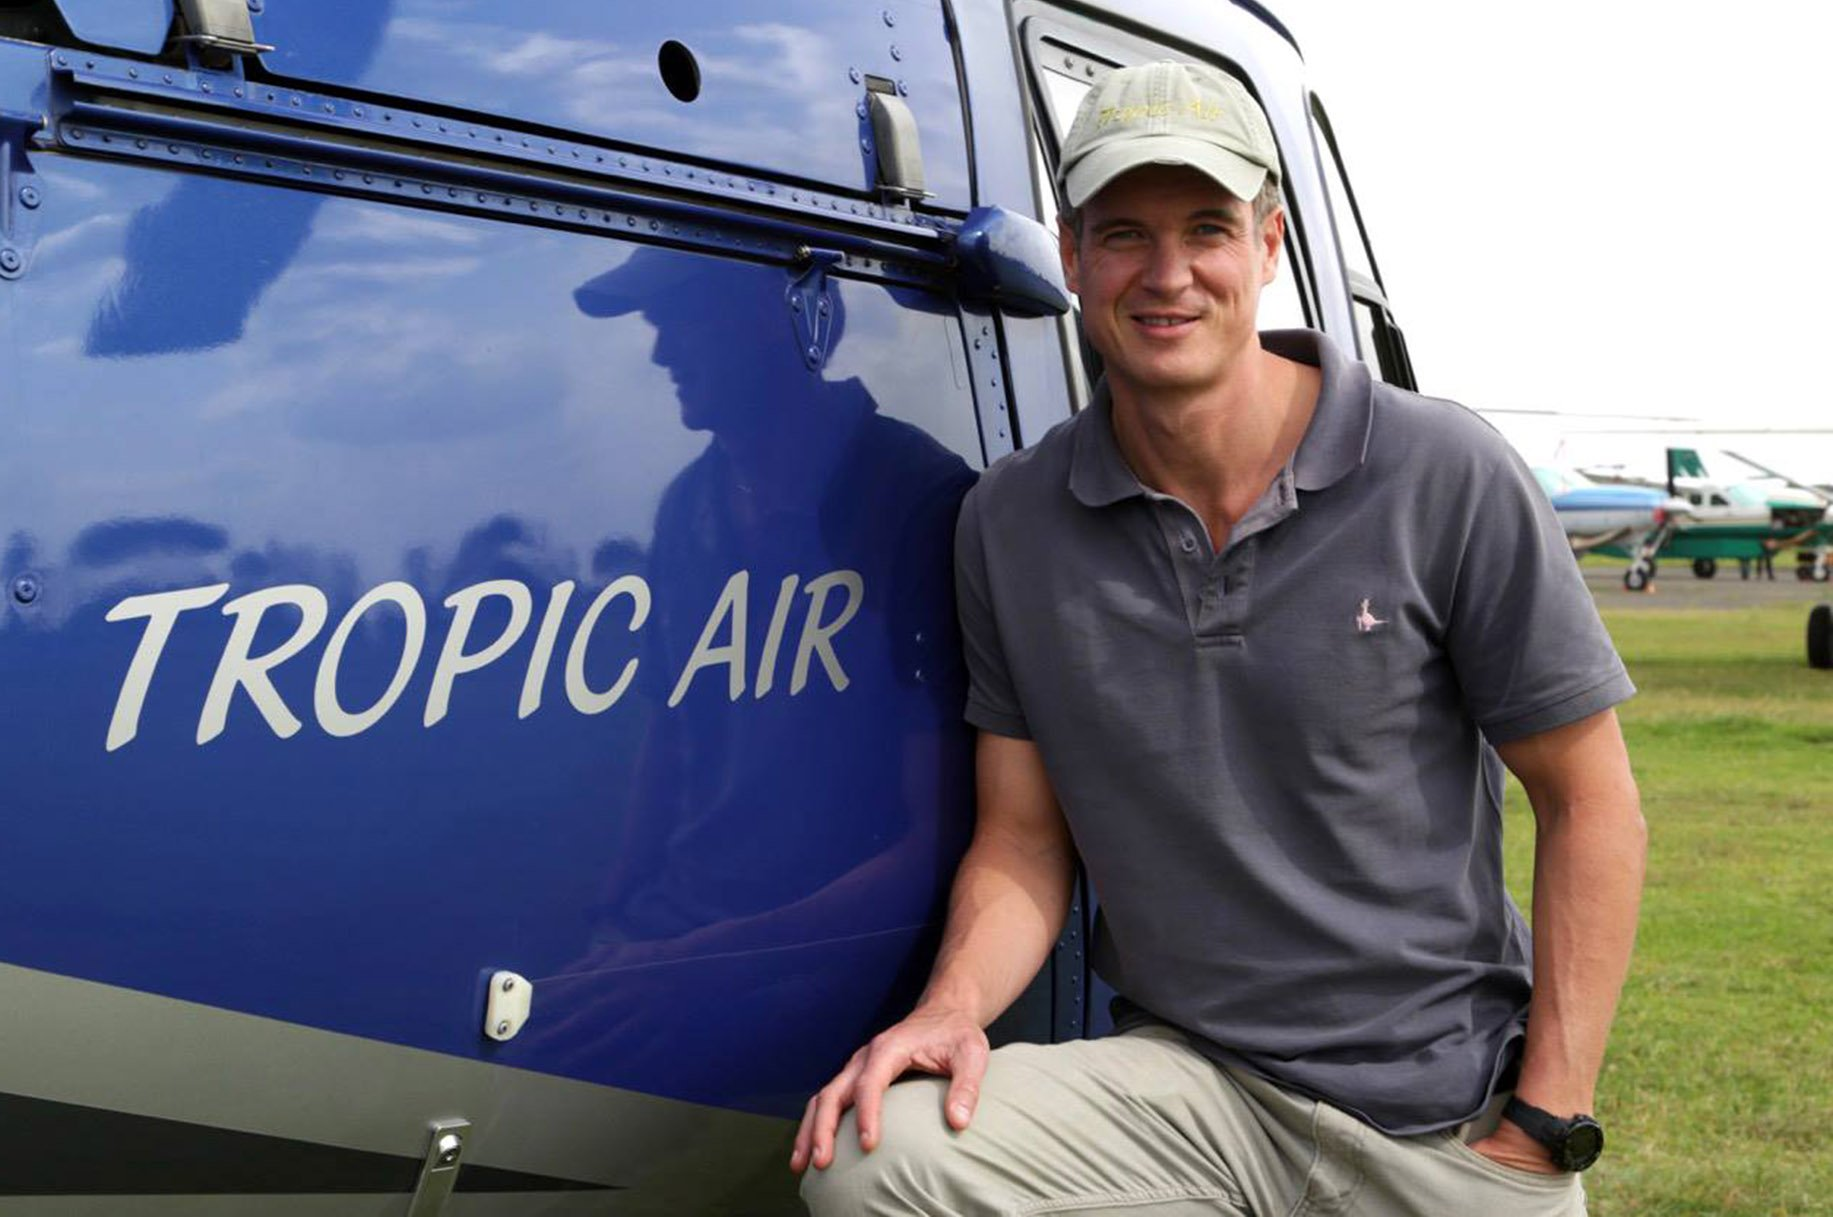 Internet pic shows: Roger Gower - British pilot shot dead by poachers in Tanzania after they downed his helicopter.nnA British helicopter pilot has been shot dead by elephant poachers in Tanzania.nRoger Gower, 37, was taking part in an anti-poaching operation with authorities in Tanzania when the criminals he was tracking fired on his aircraft.nHe was hit by an AK47 in midair and managed to land his helicopter but died before rescue teams arrived.nnnnPicture by Pixel8000 07917221968